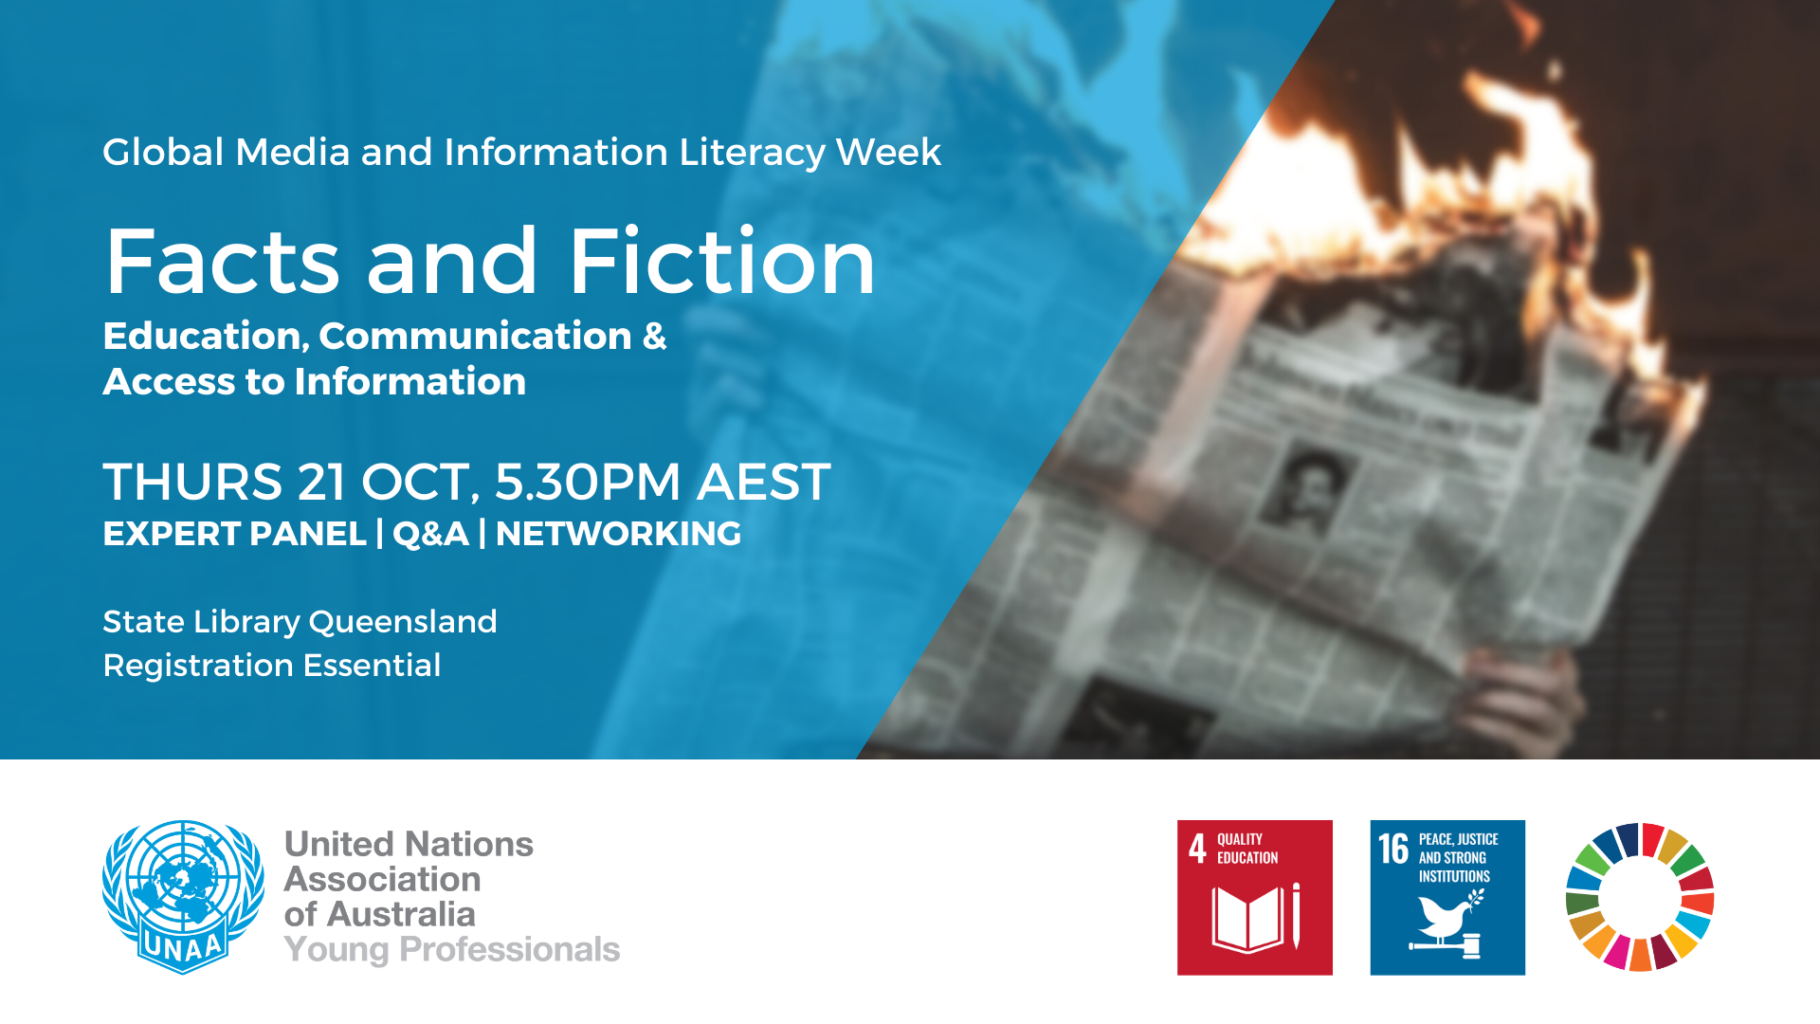 Facts and Fiction: Education, Communication and Access to Information